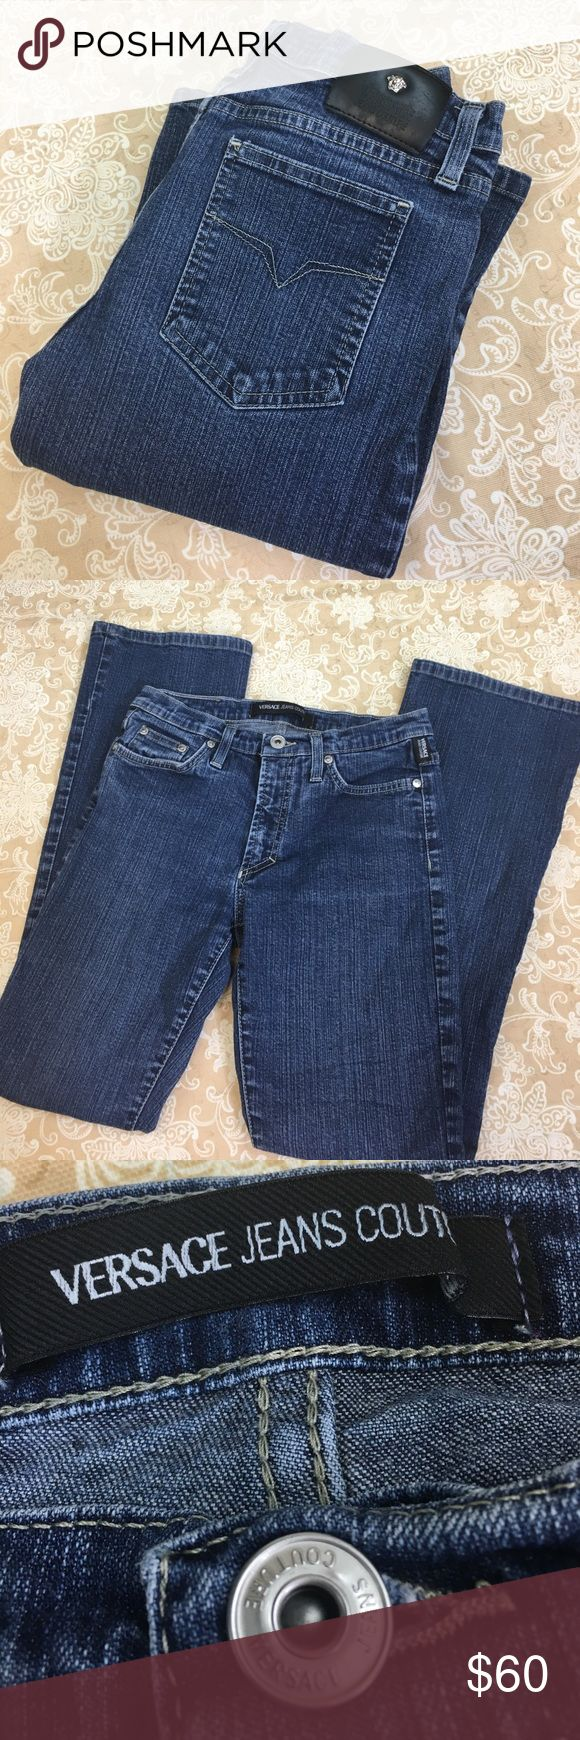 """Versace Jeans Couture Boot Cut Jeans Awesome pair of Versace Jeans Couture boot cut jeans.  97% cotton 3% other fibers. New condition.  Size 27/41.  Note this is Italian sizing, equivalent US size would be 26.  Waist measured flat 13"""", rise 8"""" and inseam 28"""".  PT Versace Jeans Couture Jeans Boot Cut"""